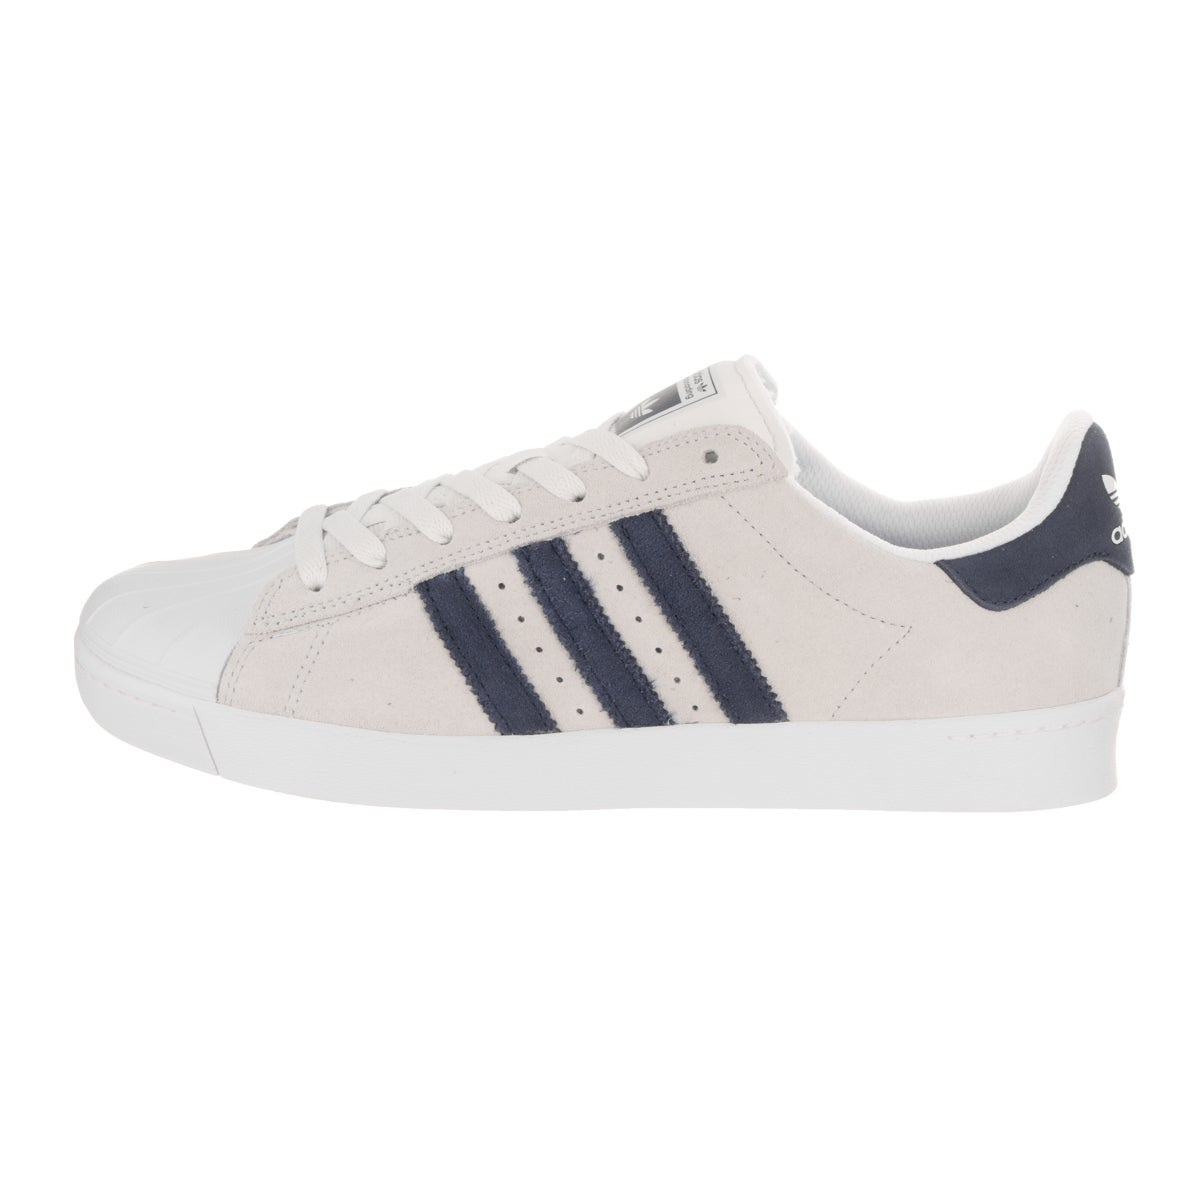 sports shoes b4d81 c5f88 Shop Adidas Men s Superstar Vulc Adv Grey Skate Shoe - Free Shipping Today  - Overstock - 14781070